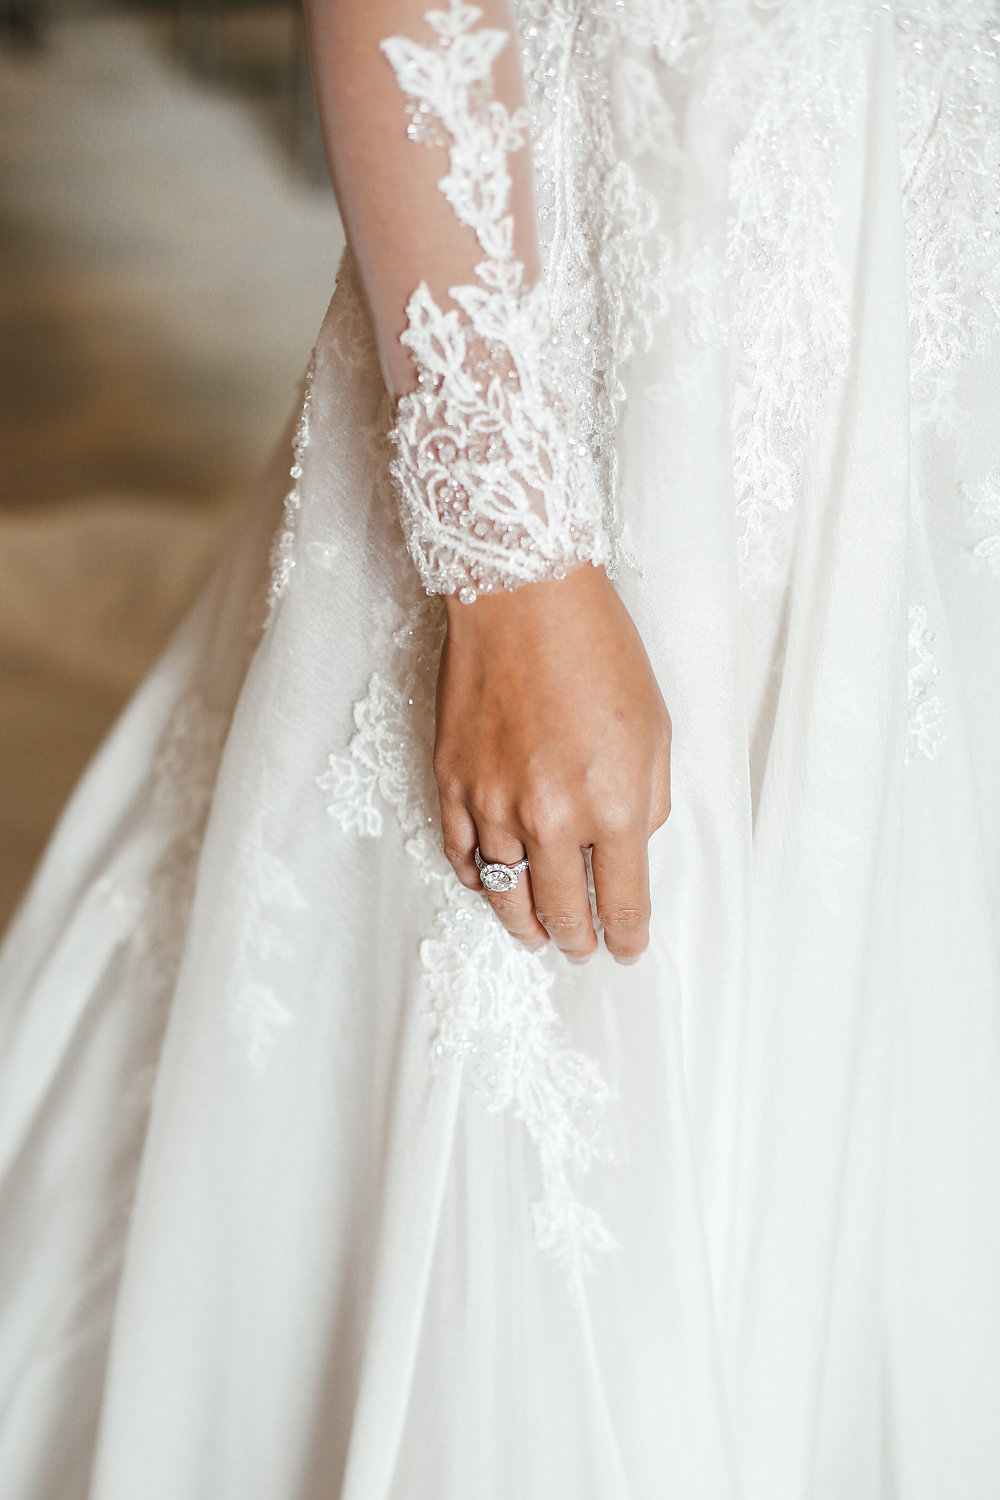 wedding dress lace detail - photo by Lara Hotz http://ruffledblog.com/secret-garden-inspired-australian-wedding